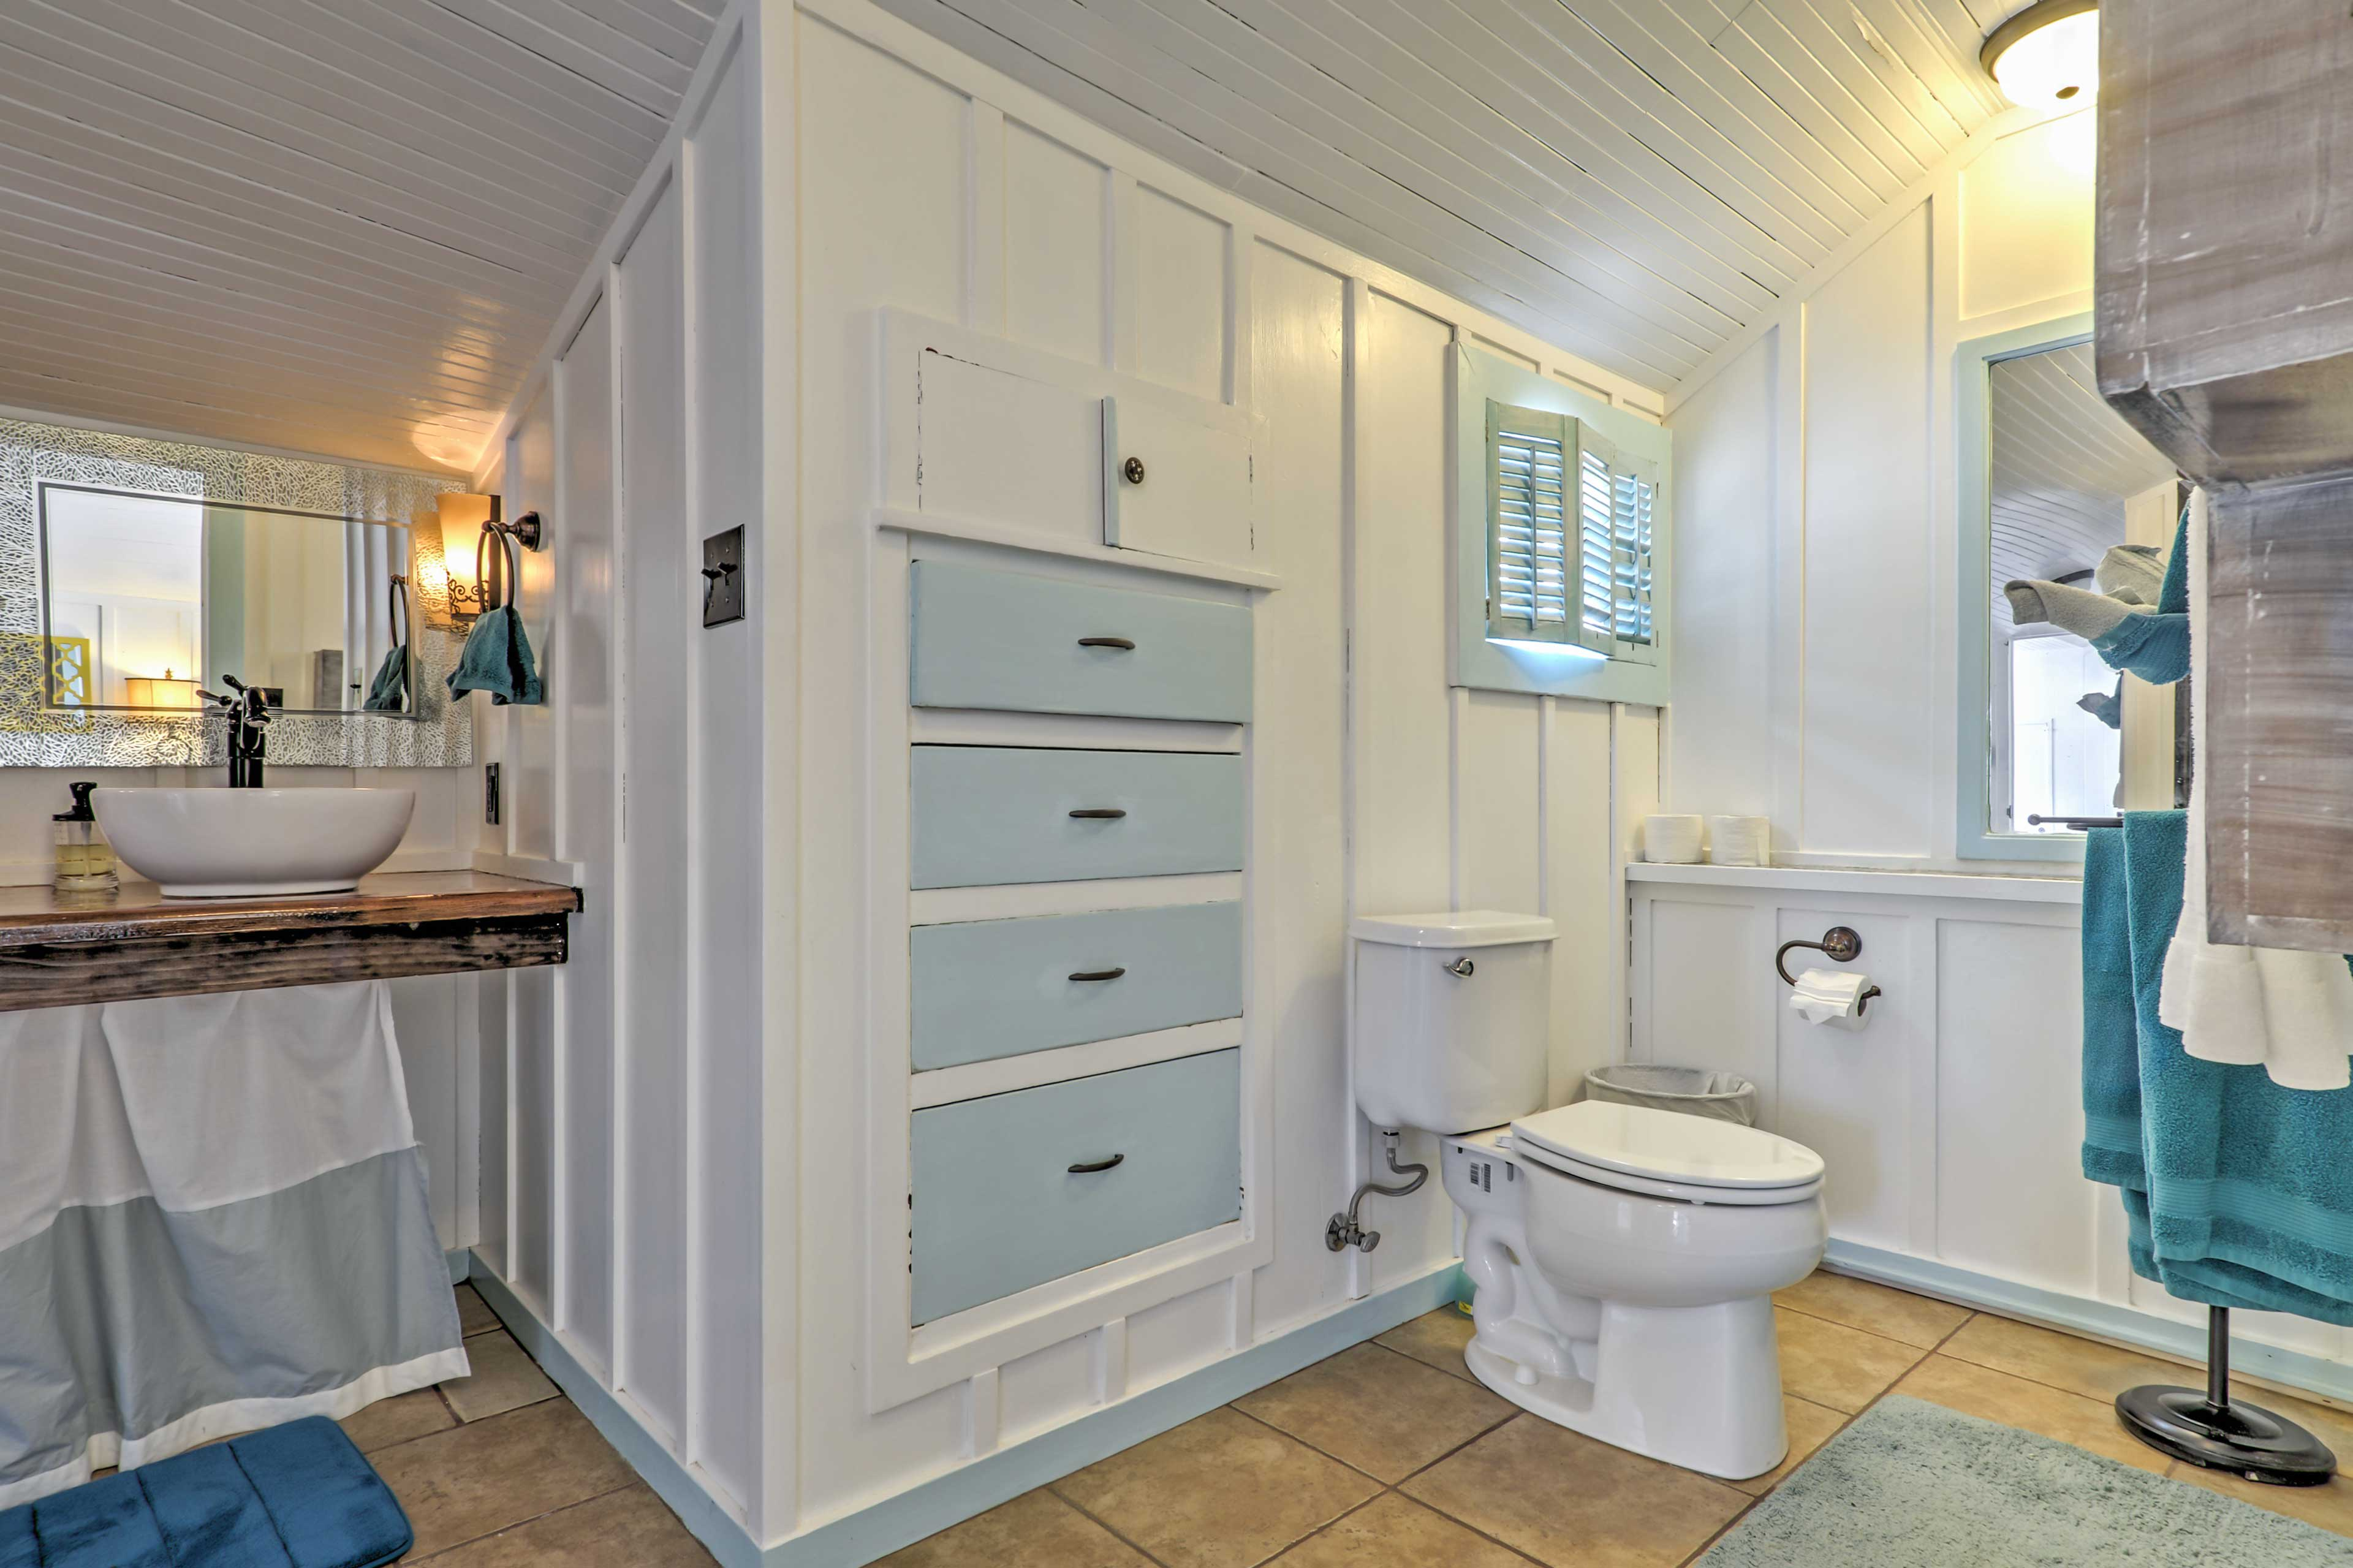 Freshen up in this bright and breezy bathroom!